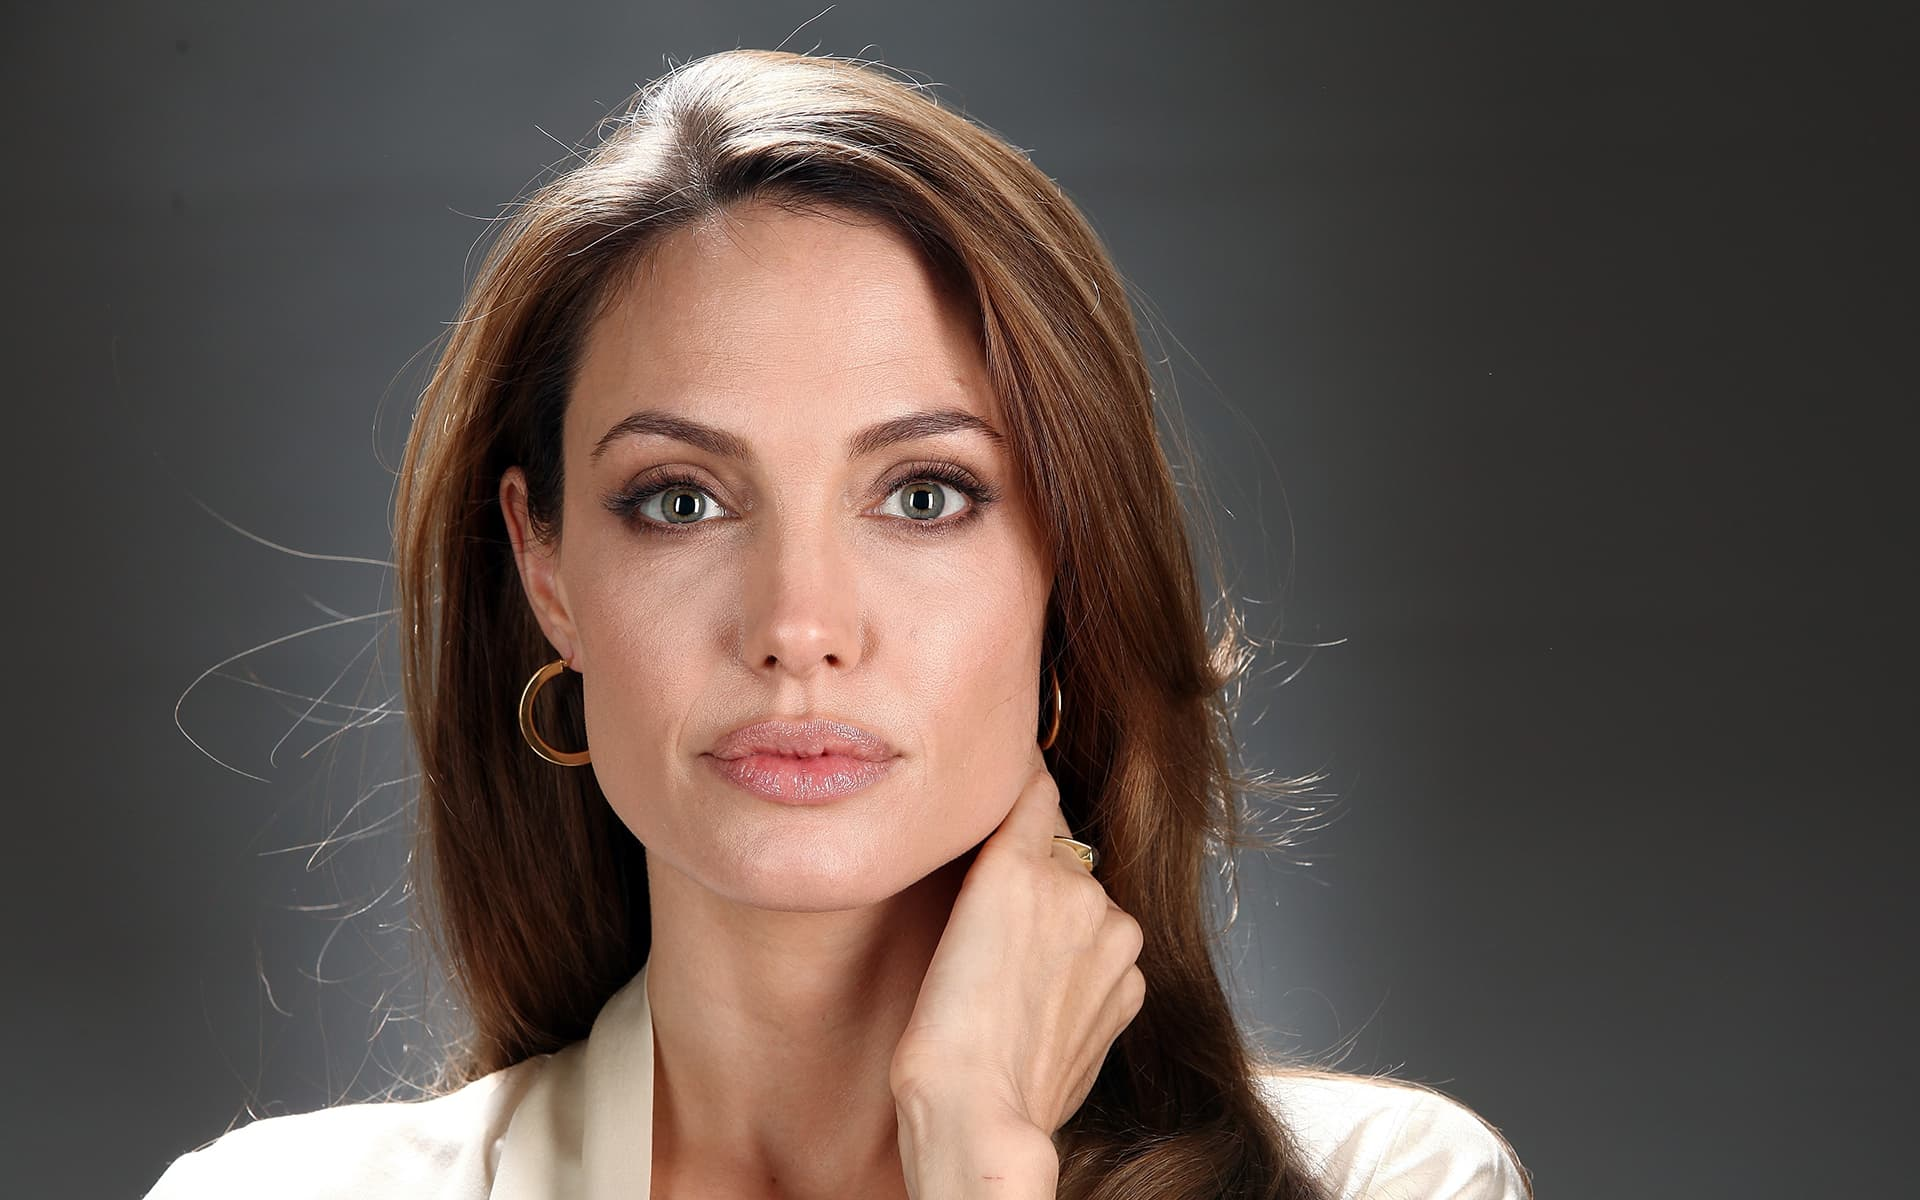 30 Angelina Jolie Wallpapers High Quality Resolution Download HD Wallpapers Download Free Images Wallpaper [1000image.com]